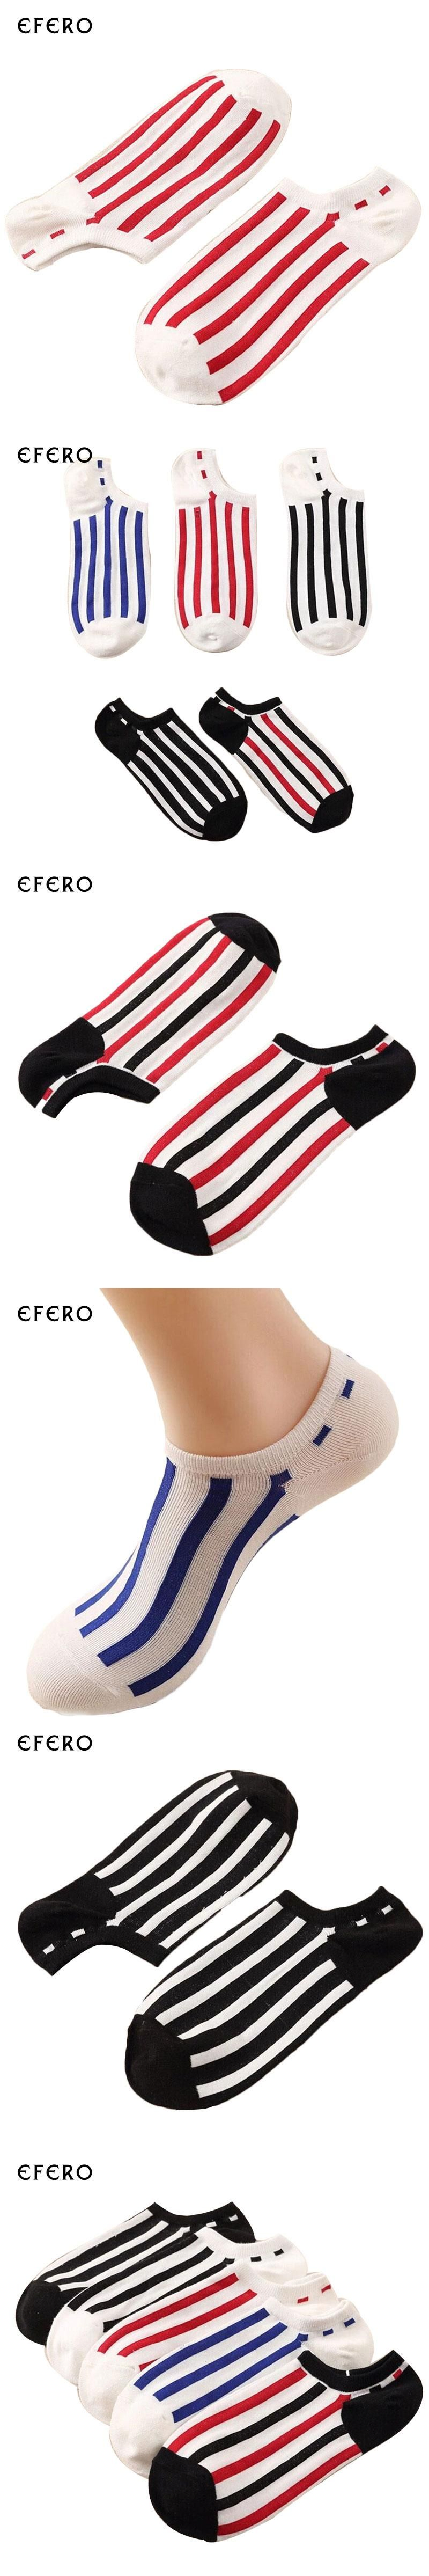 1Pair Men's Dress Socks Striped Male Ankle Sock Boat Short Socks Slippers Shallow Mouth Male Compression Socks Calcetines Hombre